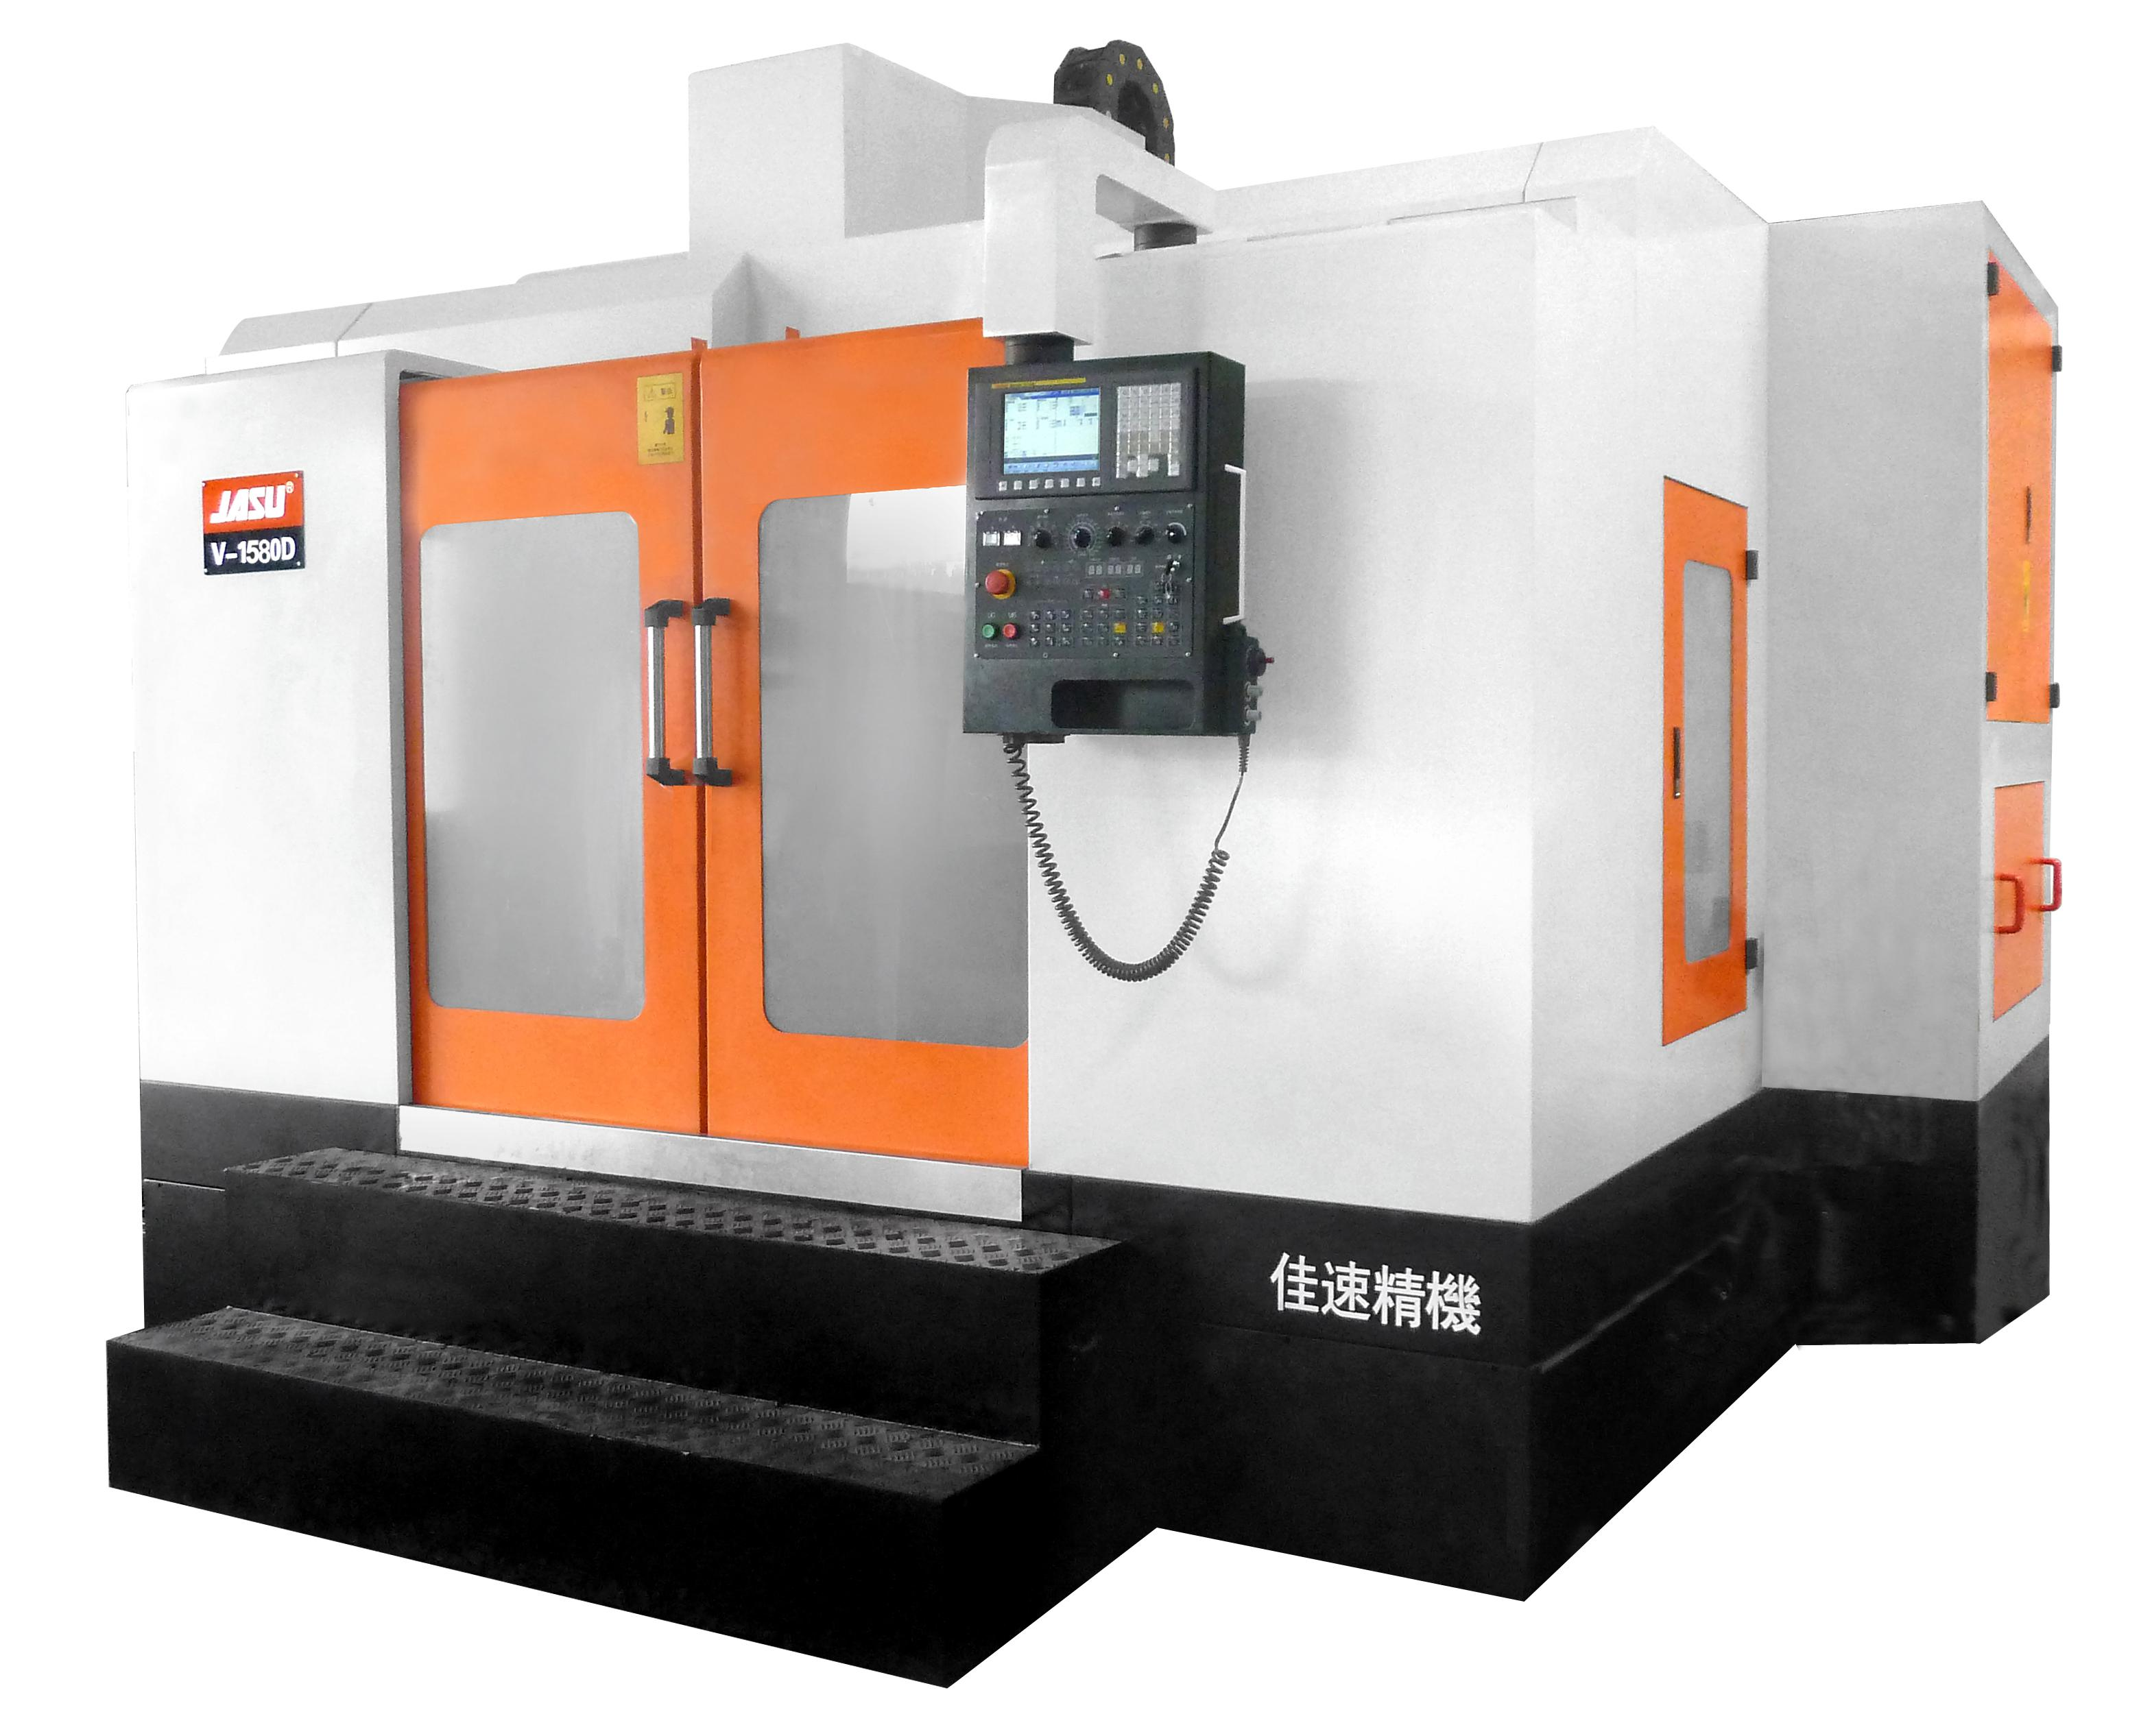 V-1580D Vertical Machining Center